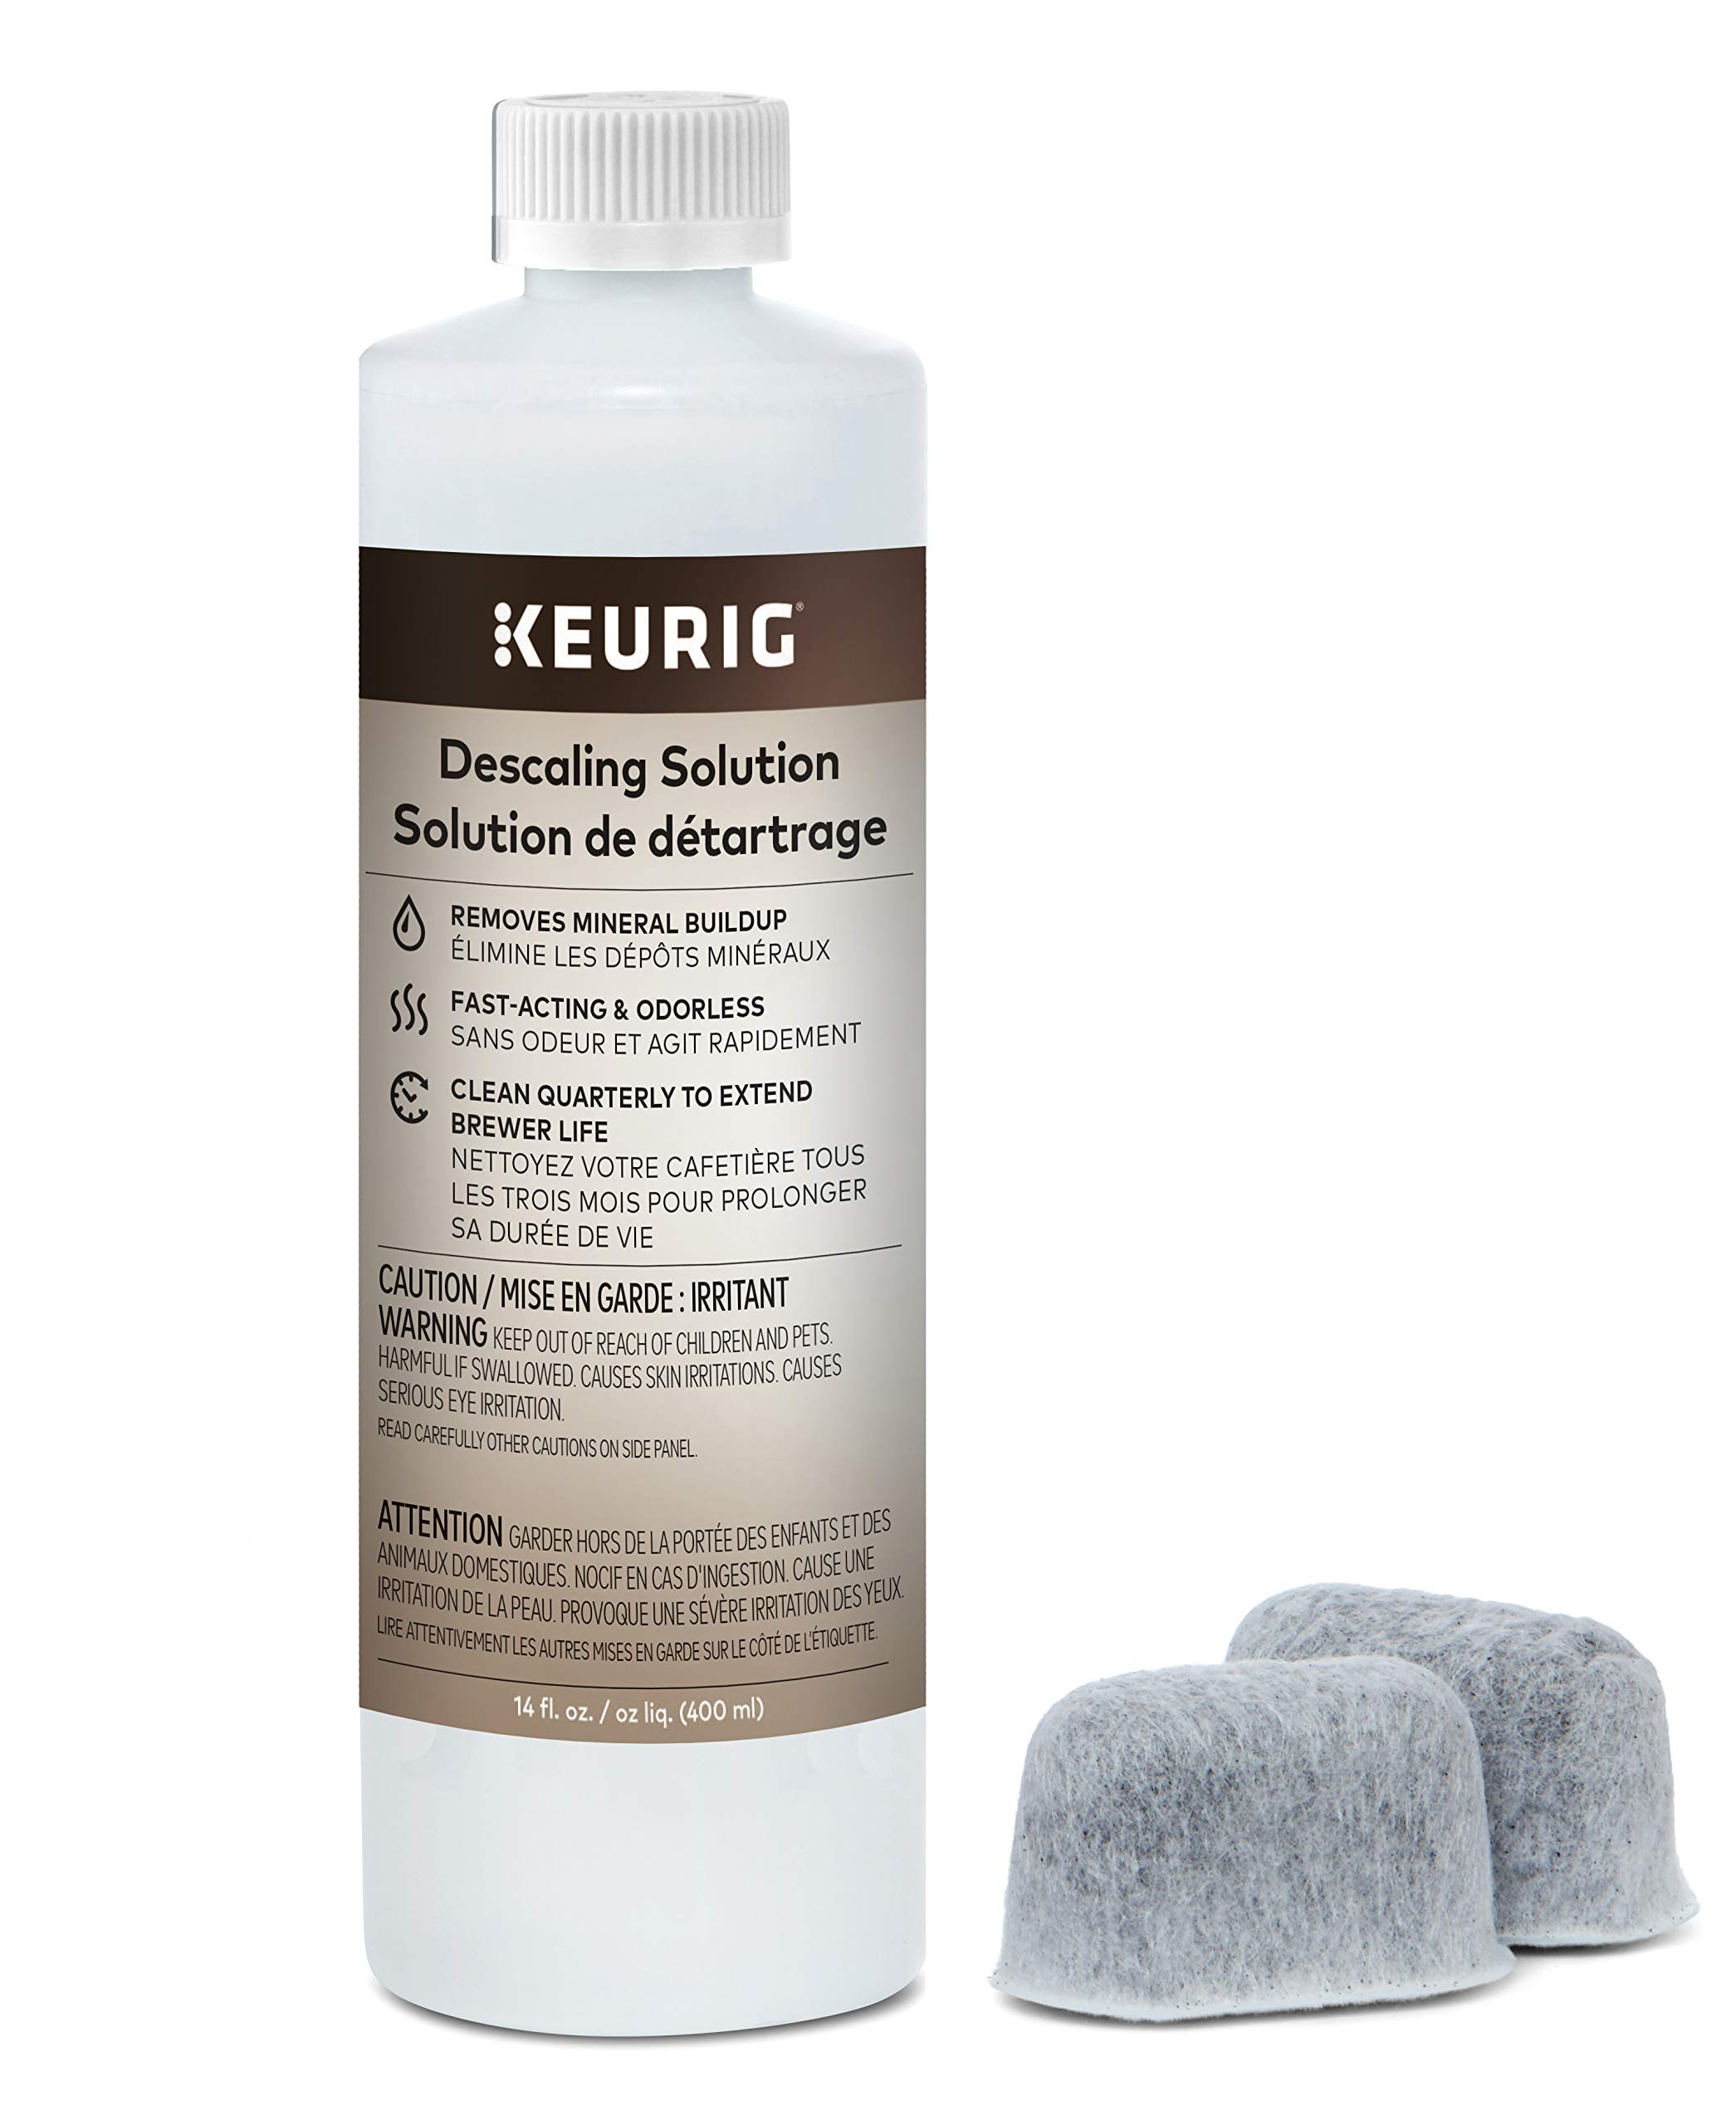 Keurig Brewer Care Kit with Descaling Solution and 2 Water Filter Cartridges, Compatible With All